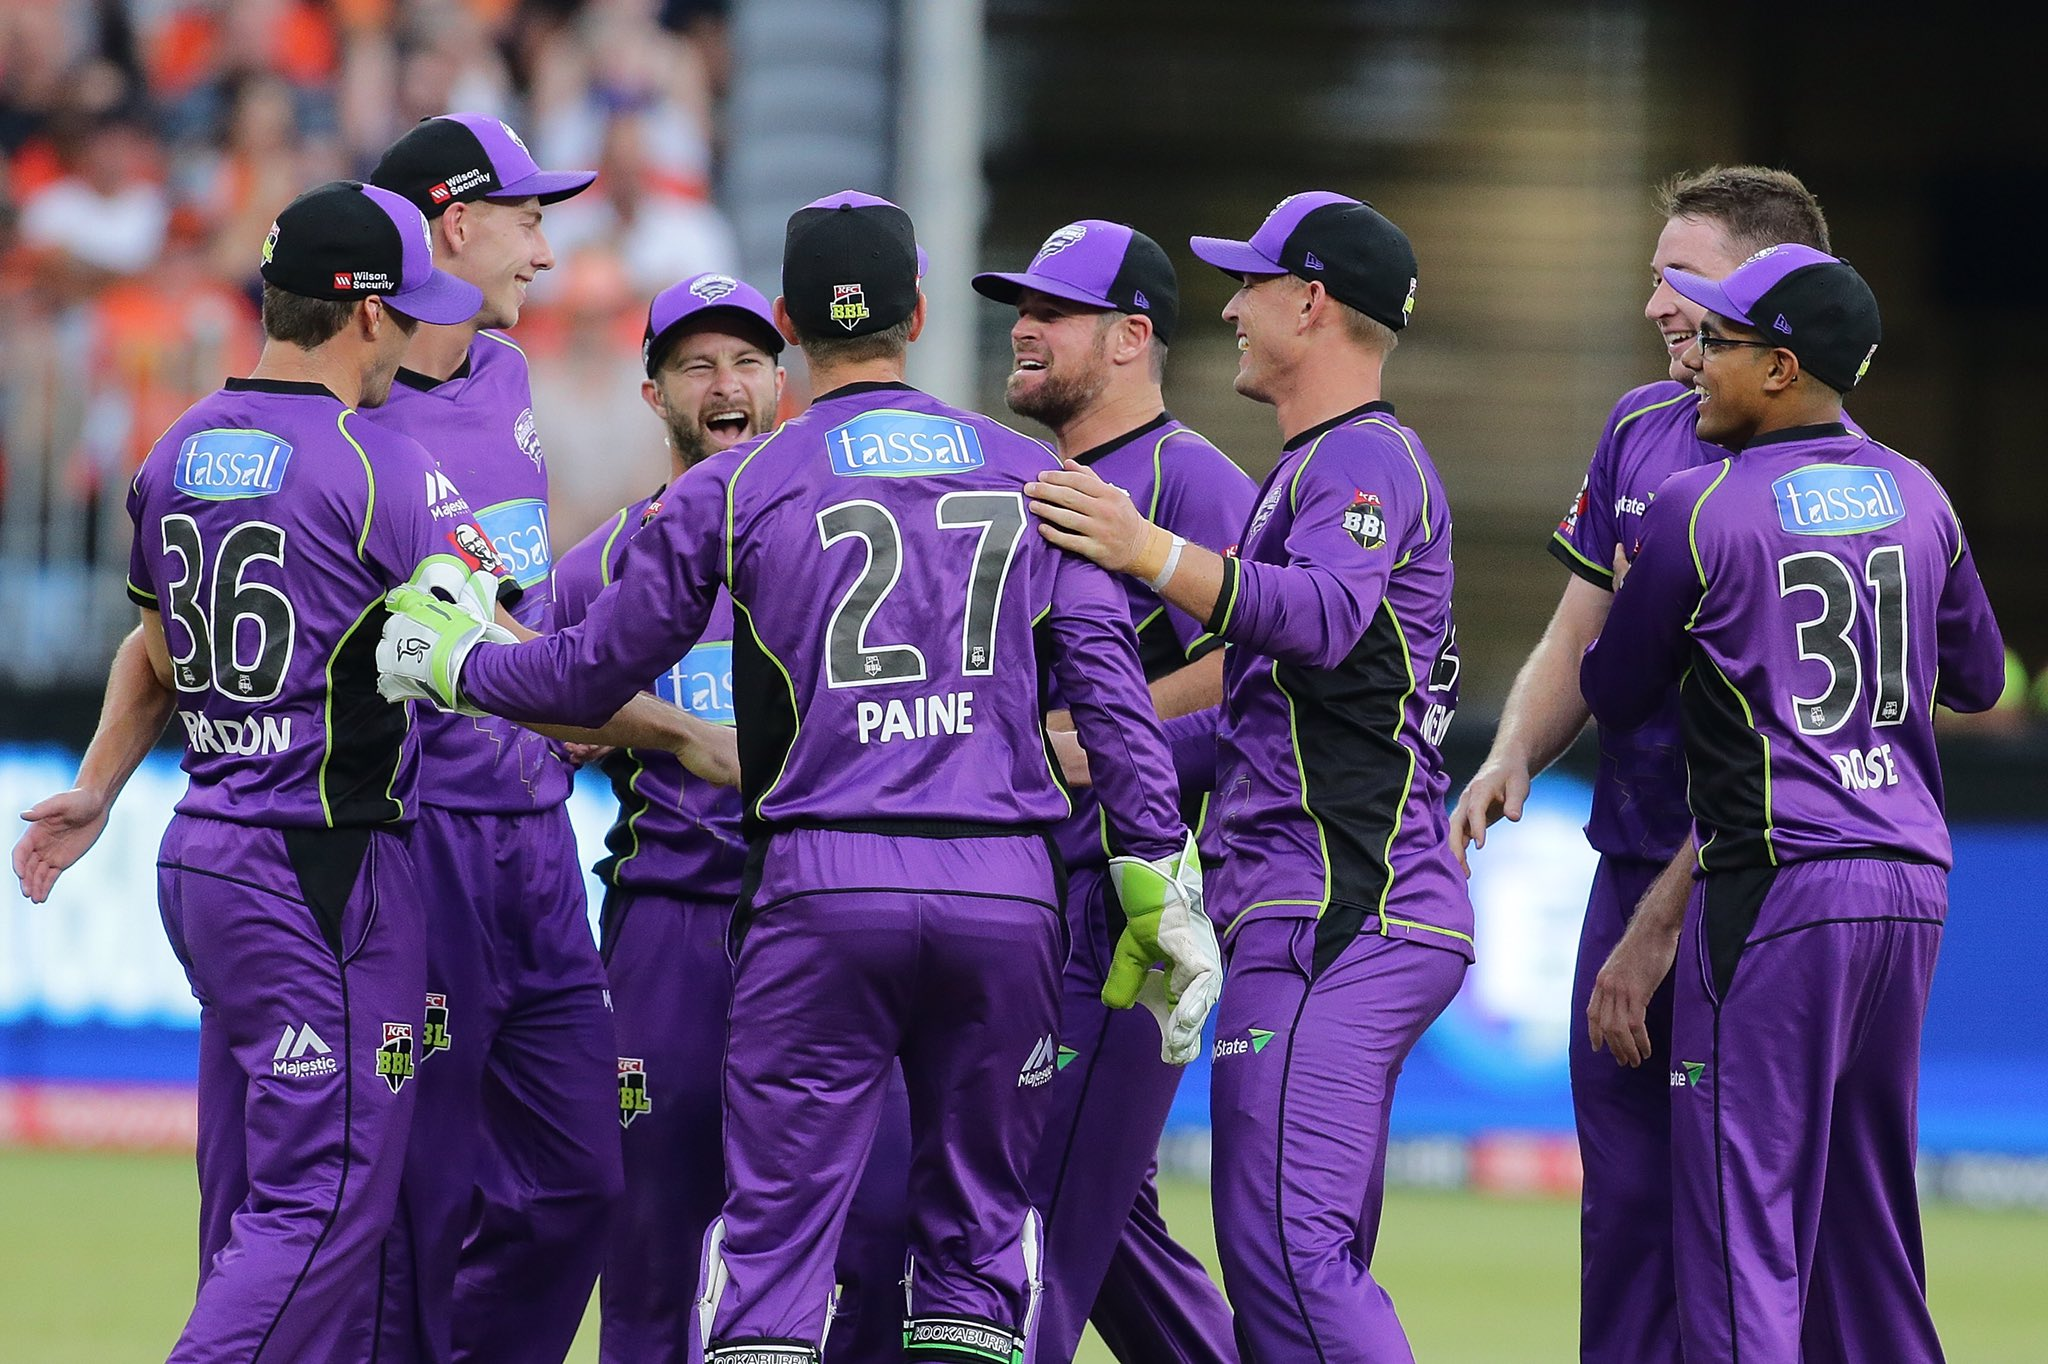 HURRICANES WIN! We have defeated the Scorchers by 71 runs to secure a place in the #BBL07 final! A fantastic effort with the bat backed up with an impressive effort with the ball and in the field! #TasmaniasTeam 🌪 https://t.co/txpuUceEdA